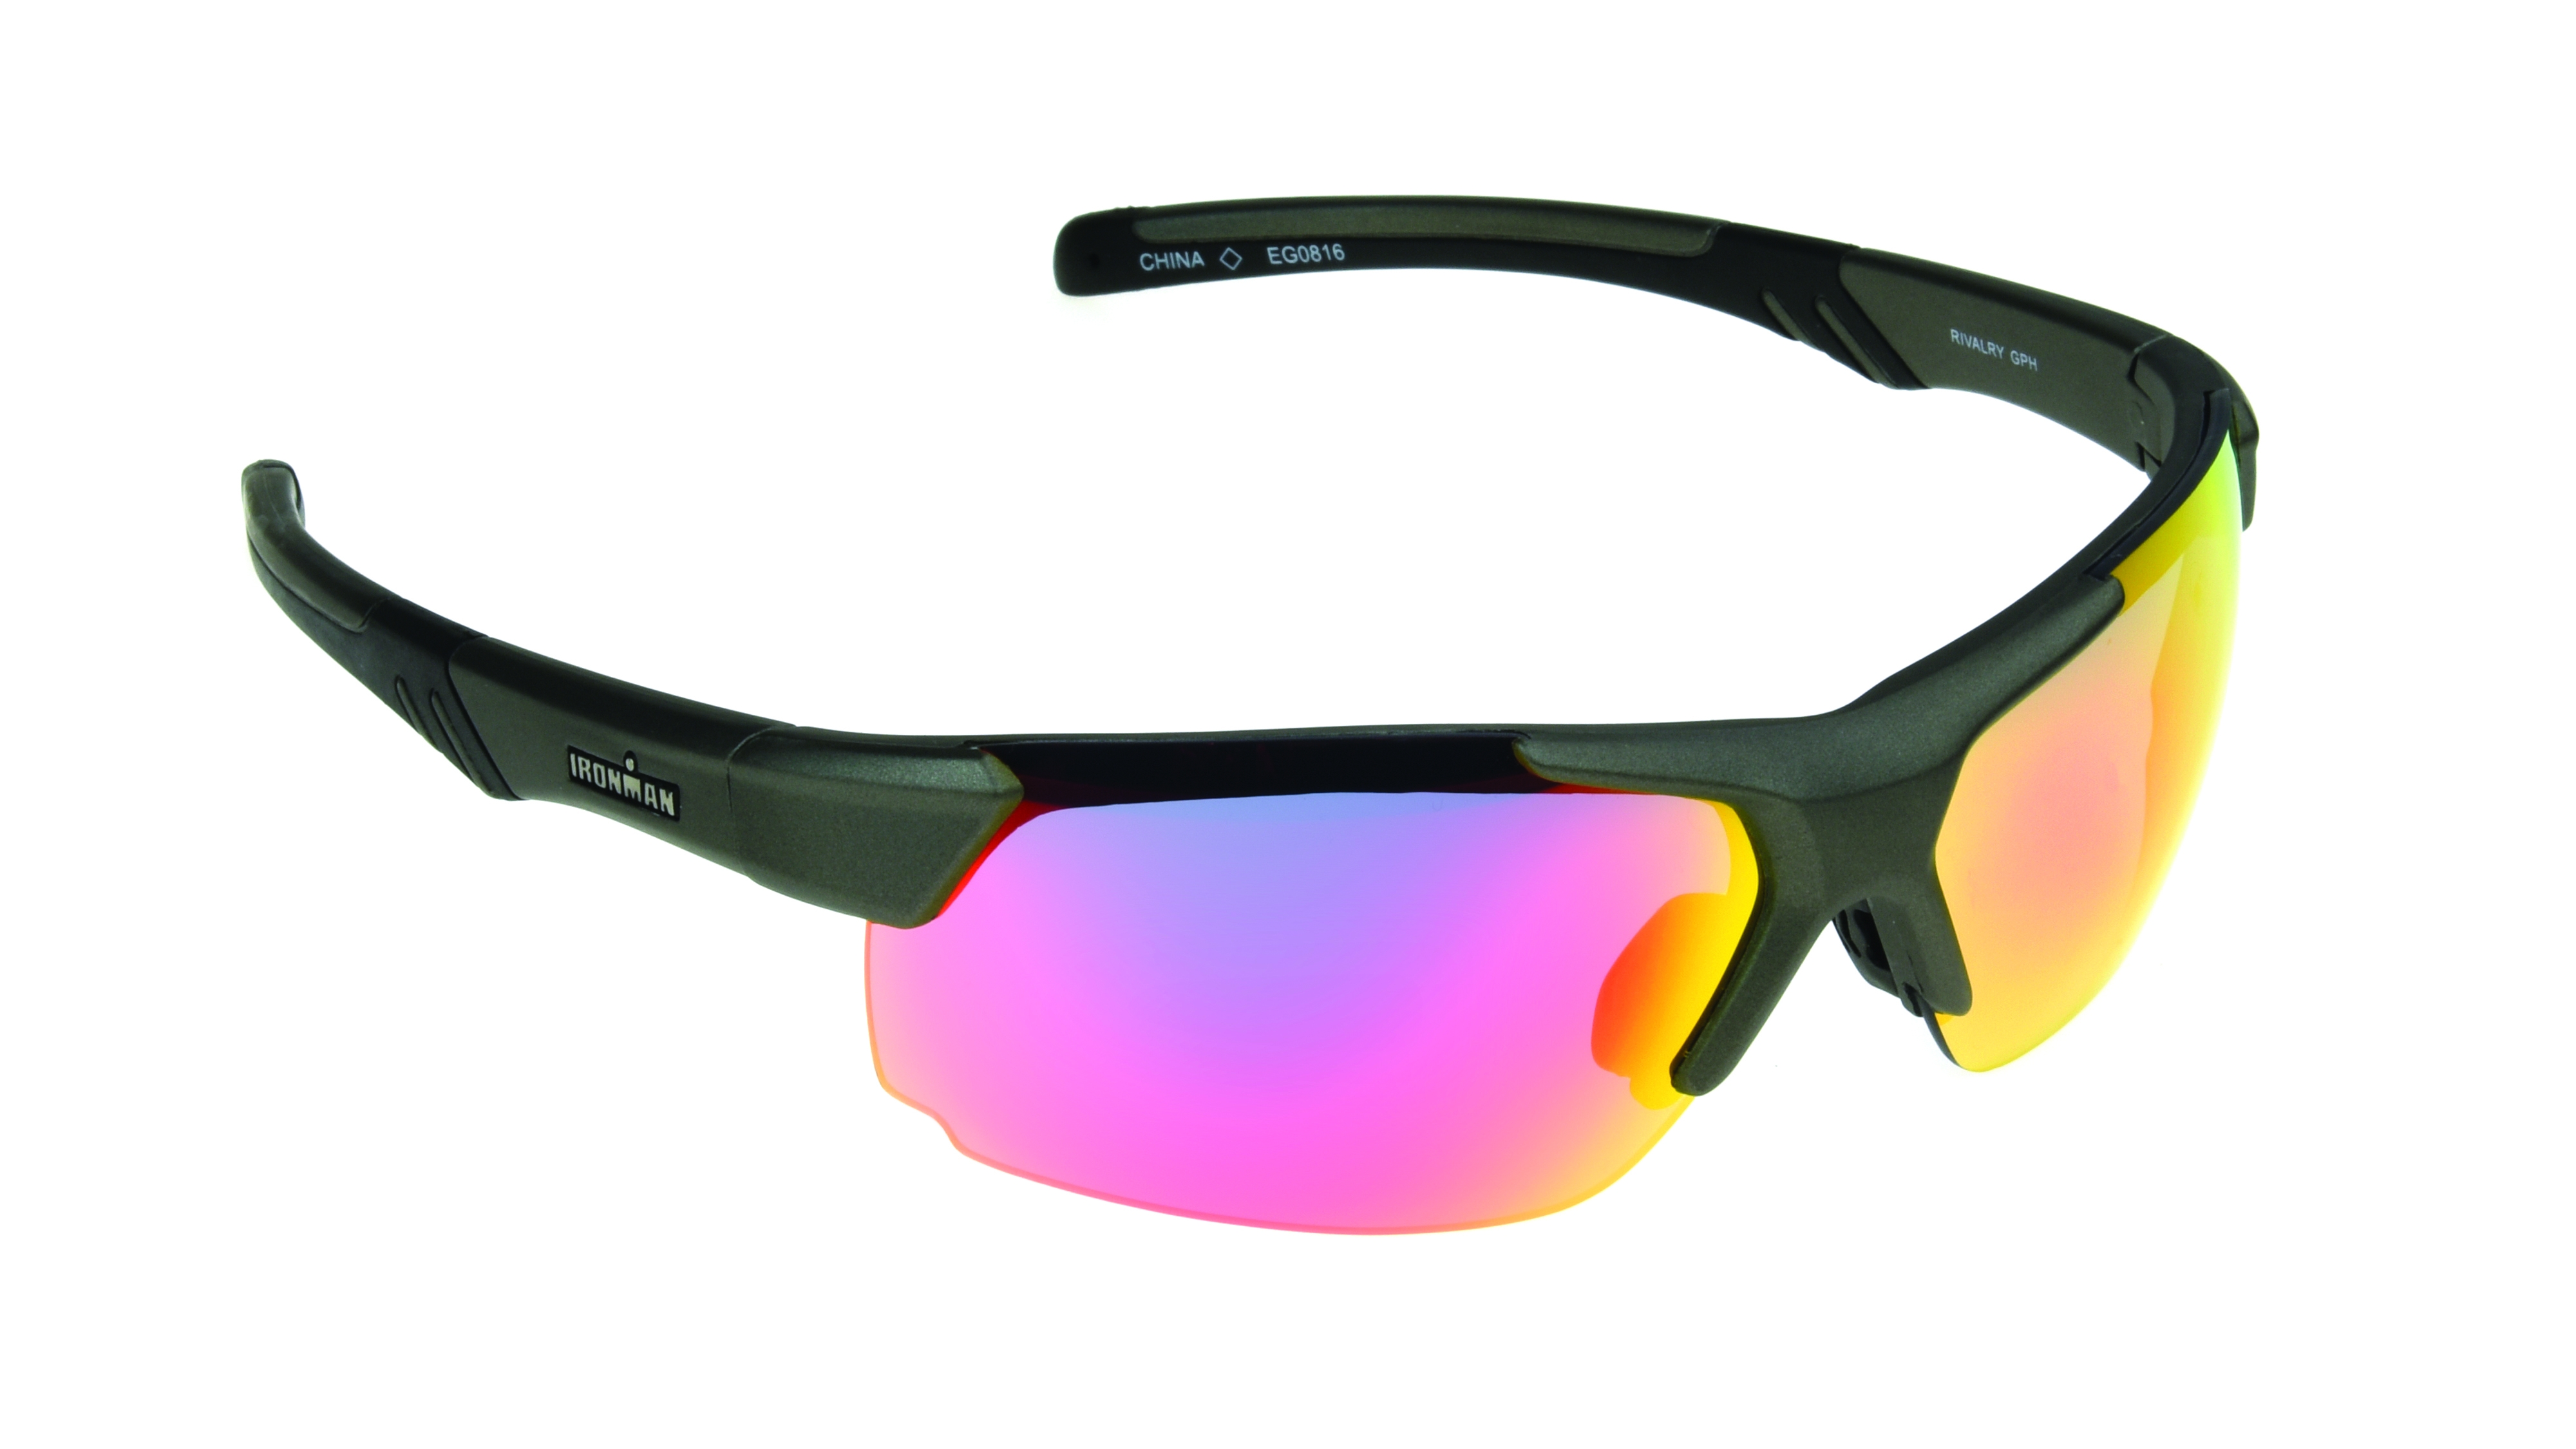 IRONMAN TRIATHLON - Rivalry Sunglasses